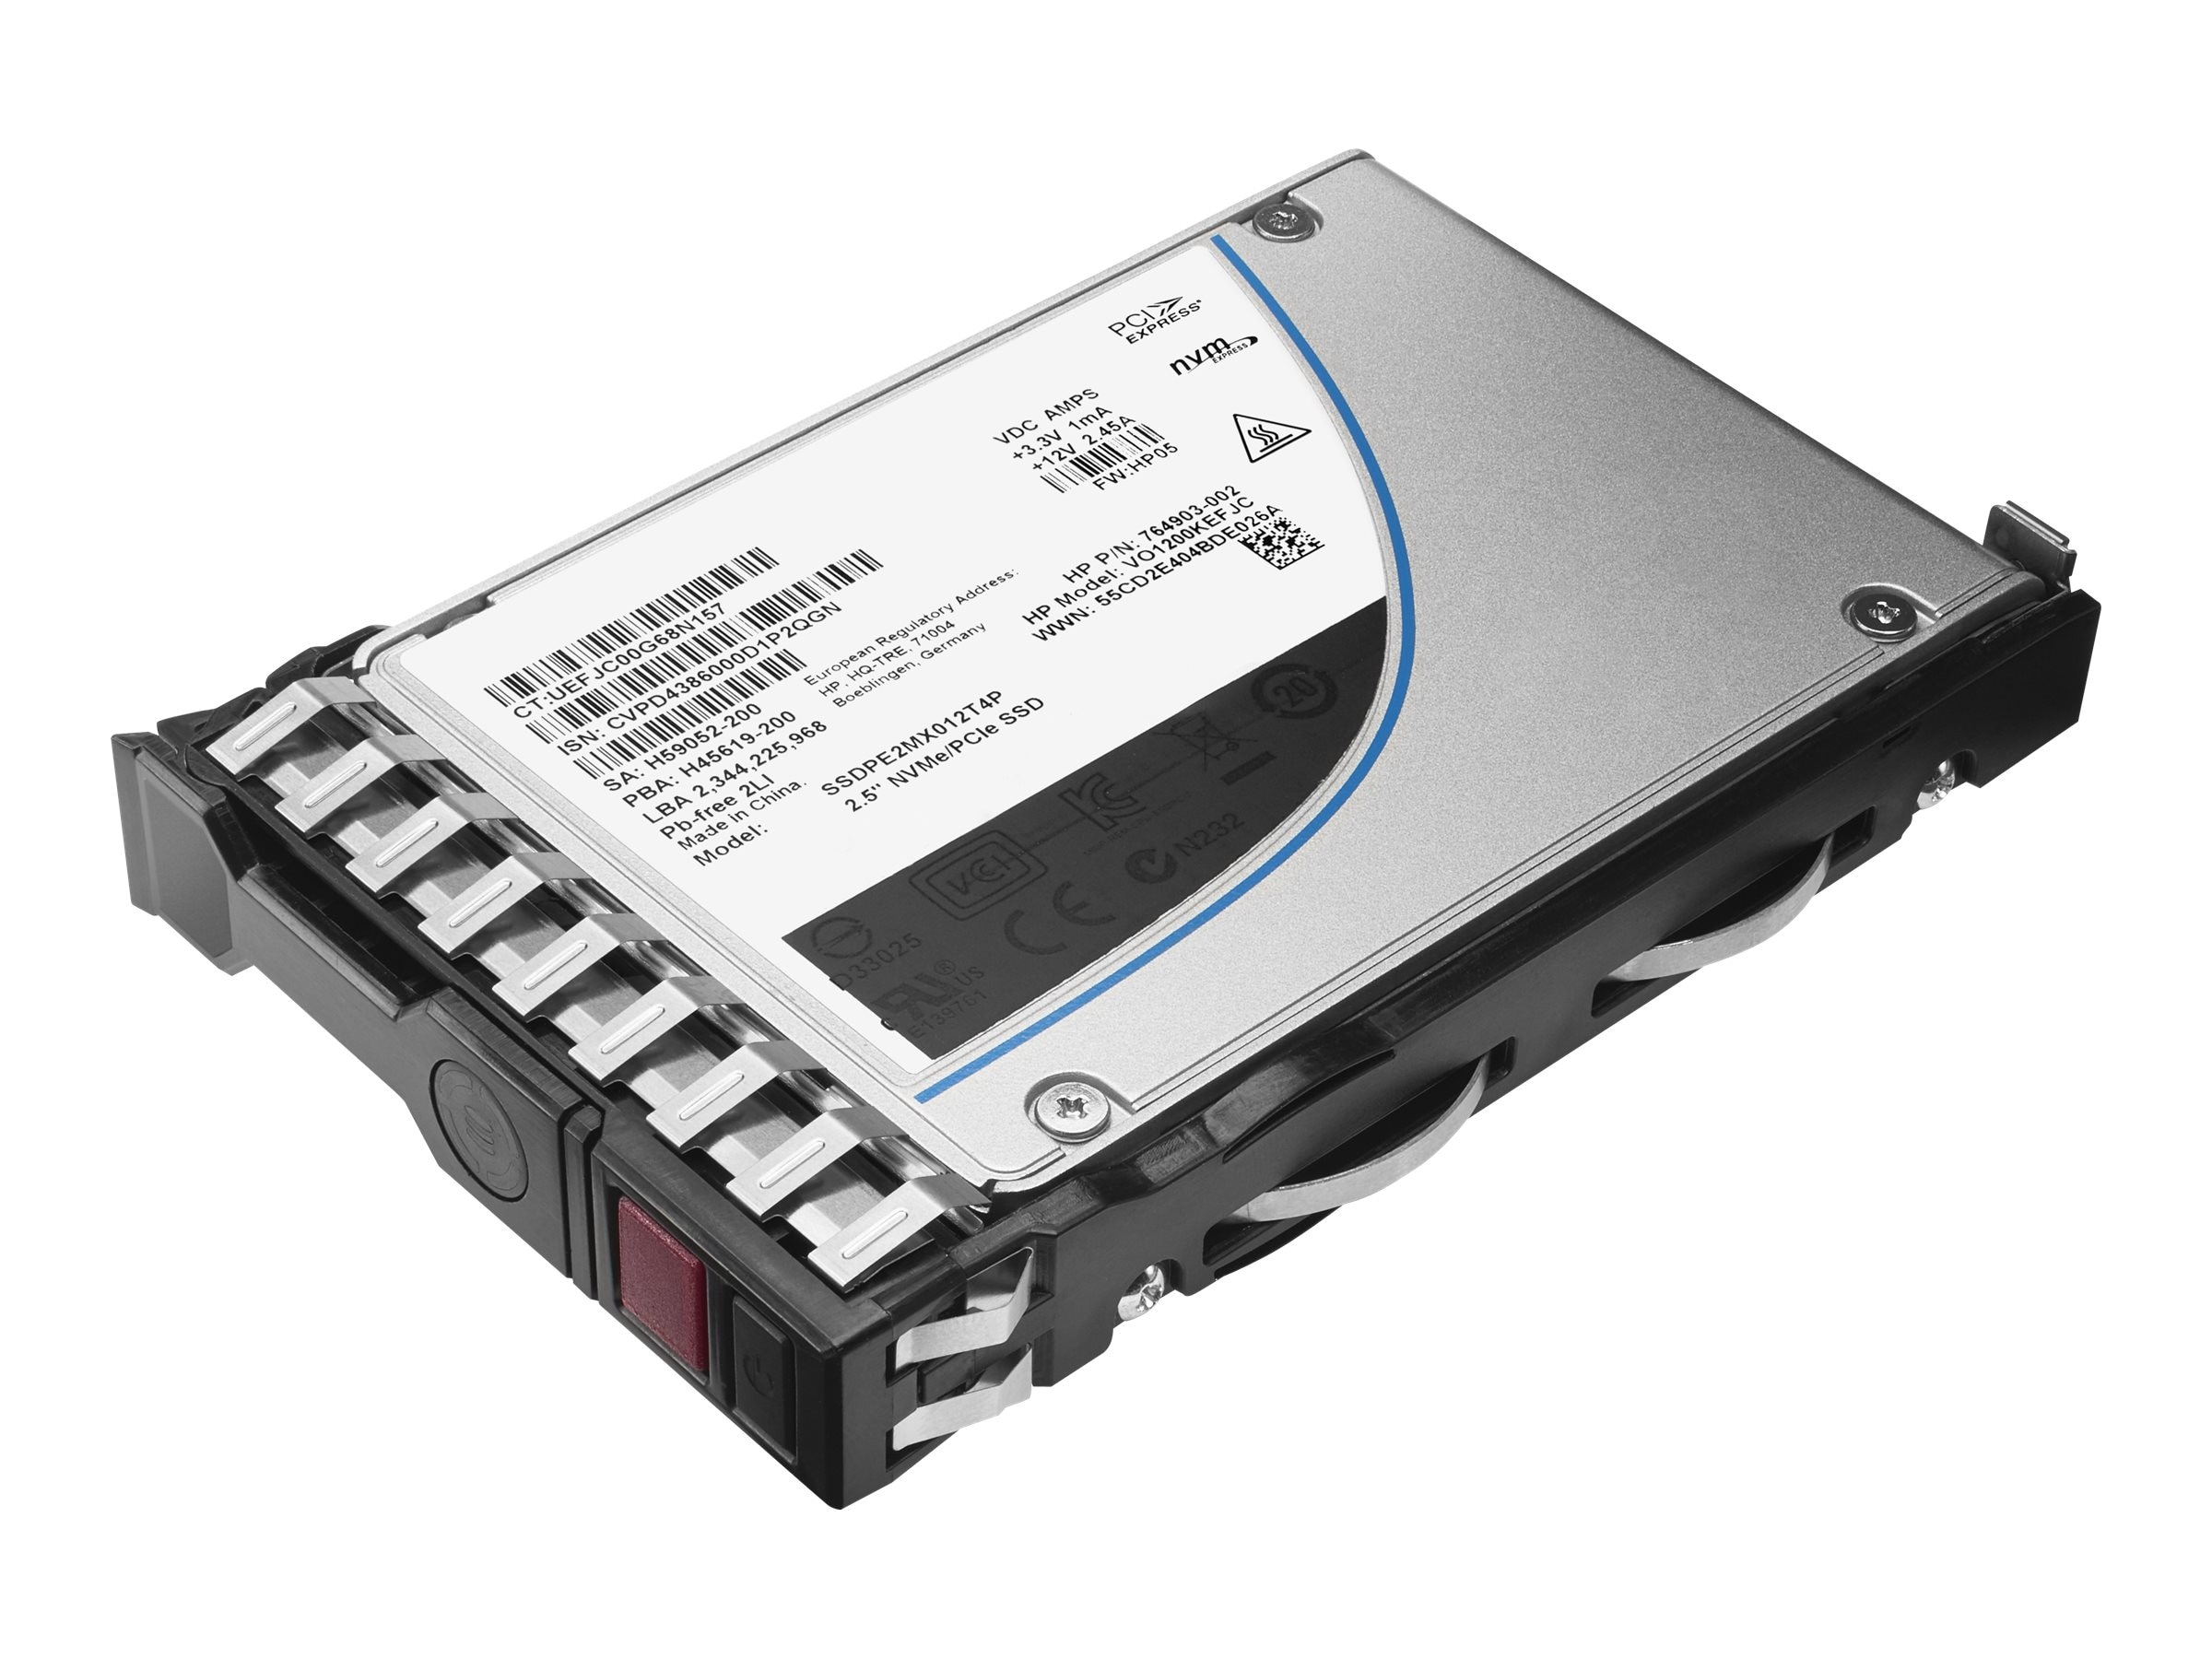 HPE 800GB SAS 12Gb s Write Intensive-1 SFF 2.5 SC Solid State Drive for HPE Gen8 Servers & Beyond, 846430-B21